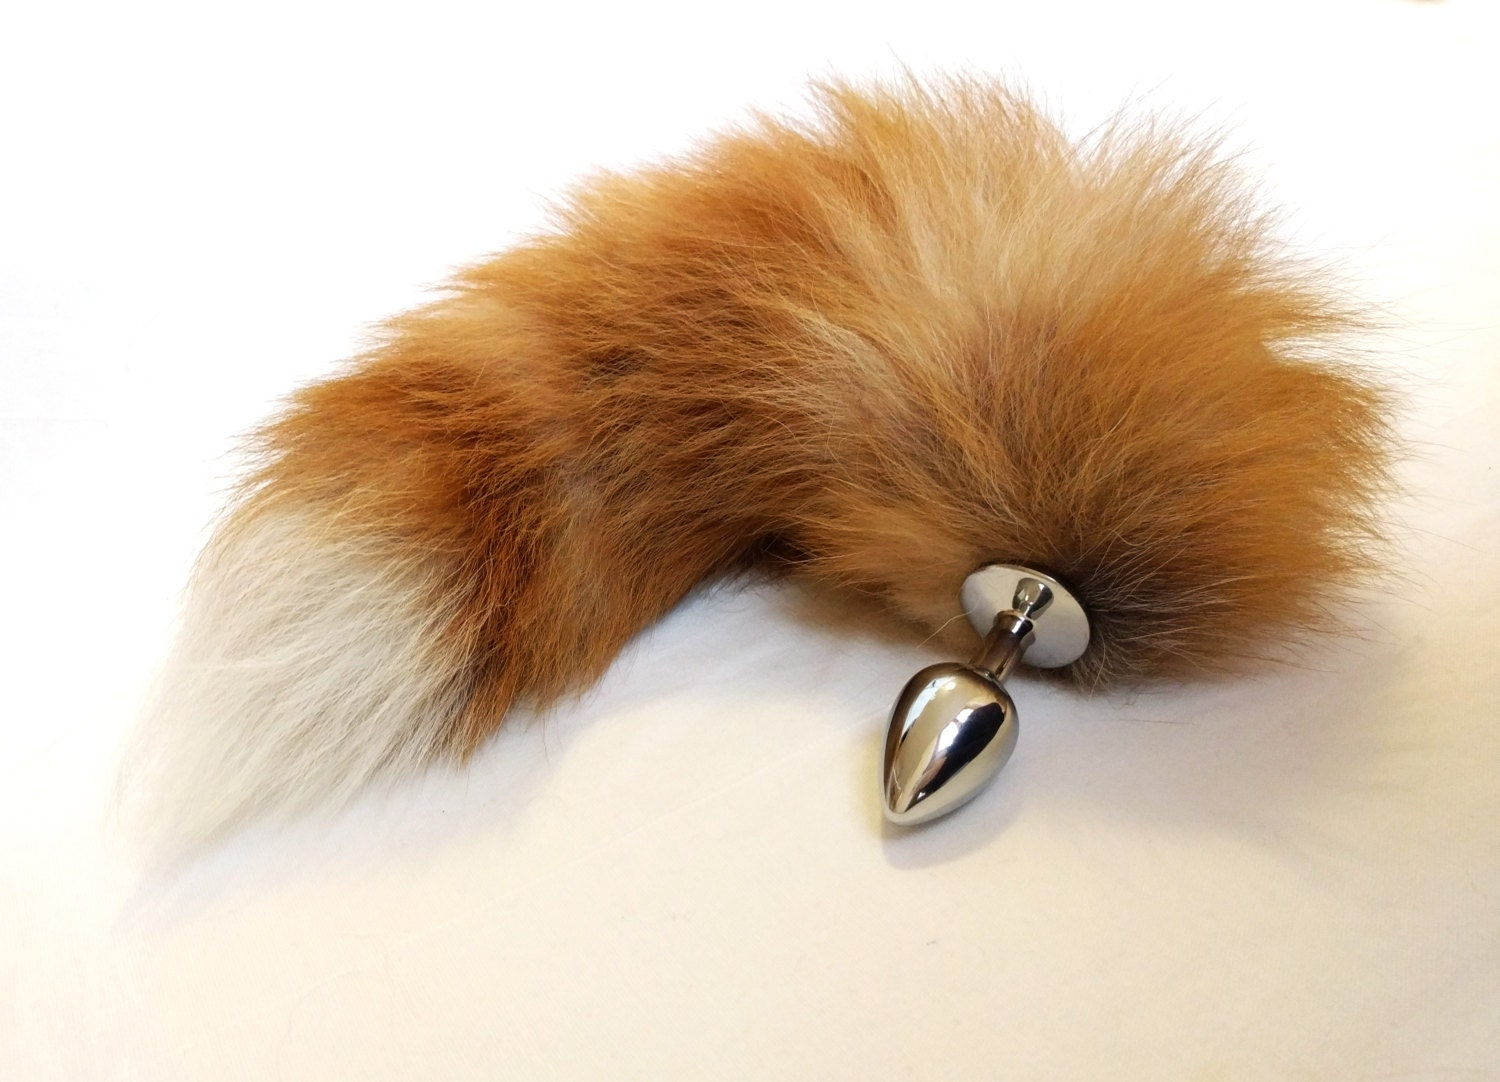 ass plug tail Red fox tail butt plug - Sexy erotic - BDSM toys - Adult toy - Red fox tail  anal plug - Gay sex toy - Jewelry butt plug - Sex slave - Mature